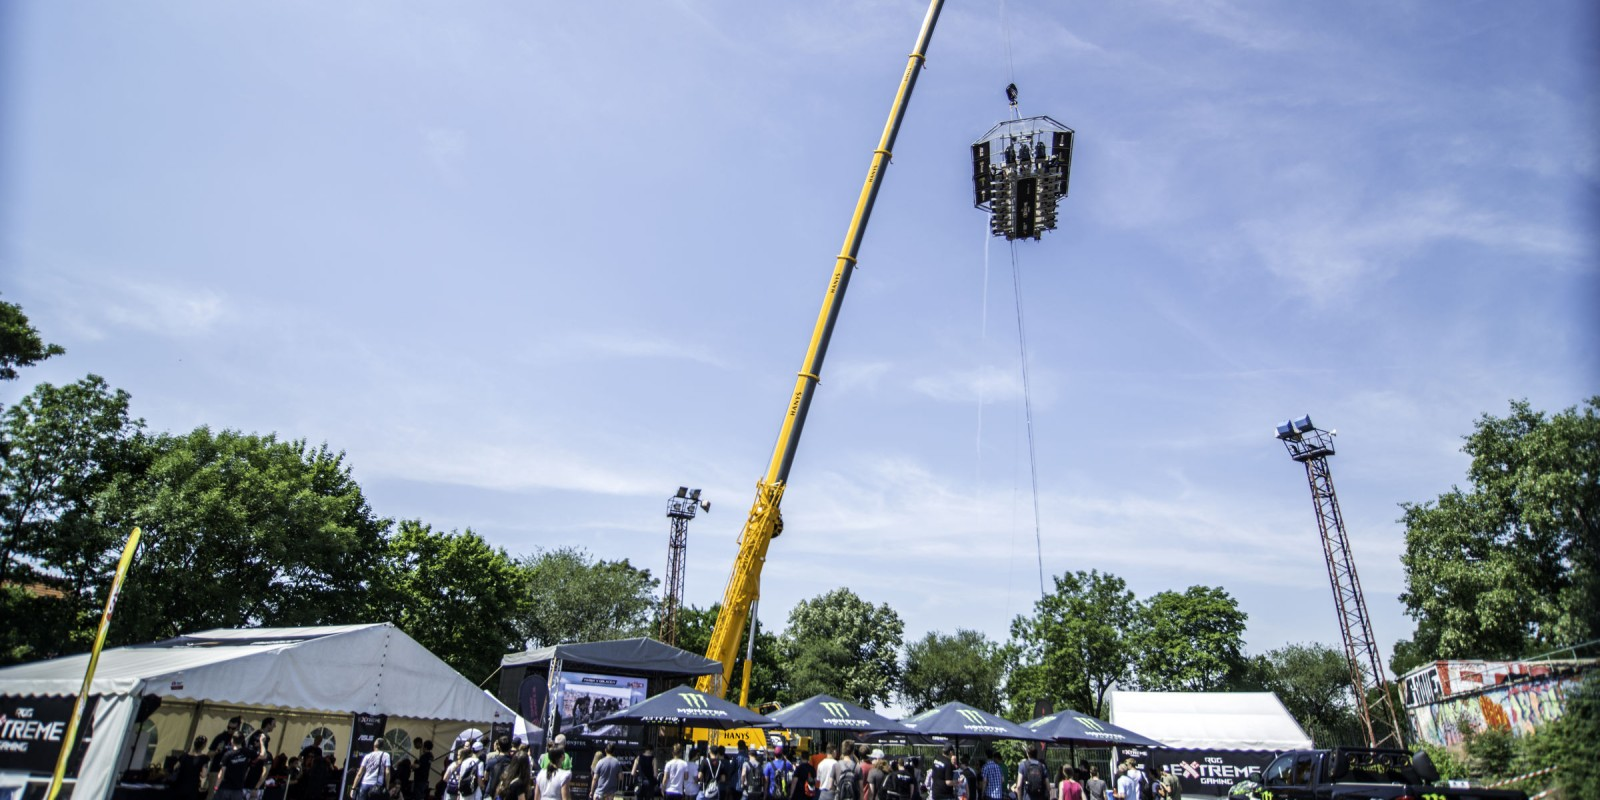 ROG Extreme Gaming is a gaming event taking place on a platform haning on a crane above the city